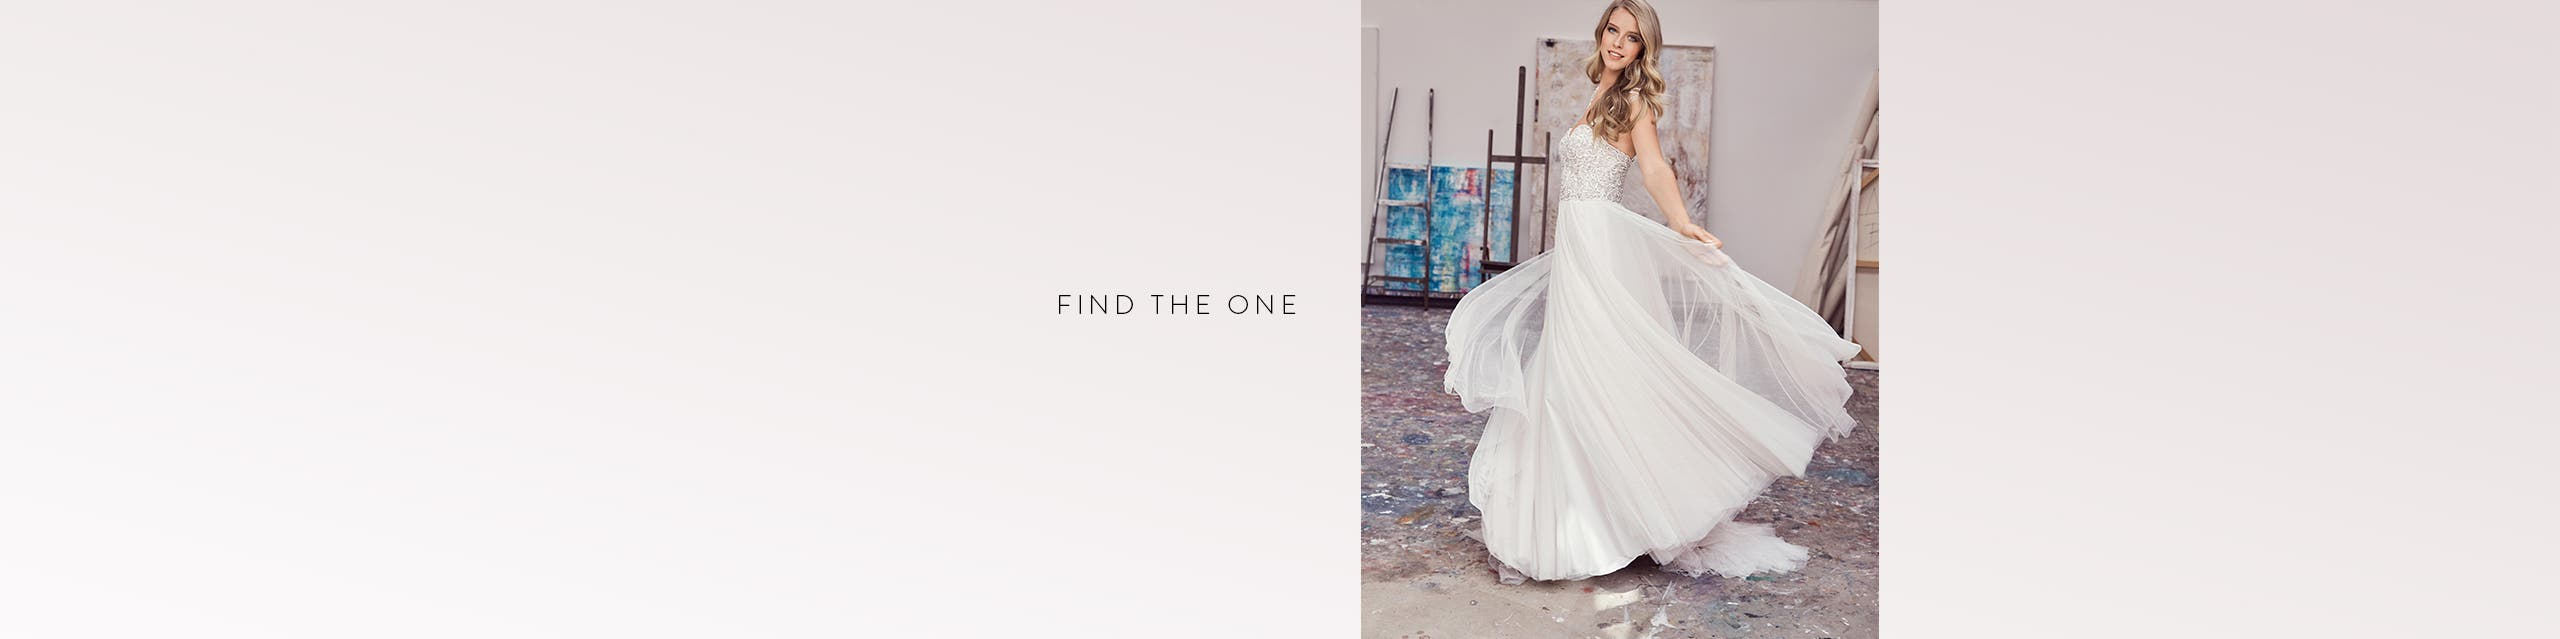 Find the one: wedding dresses.